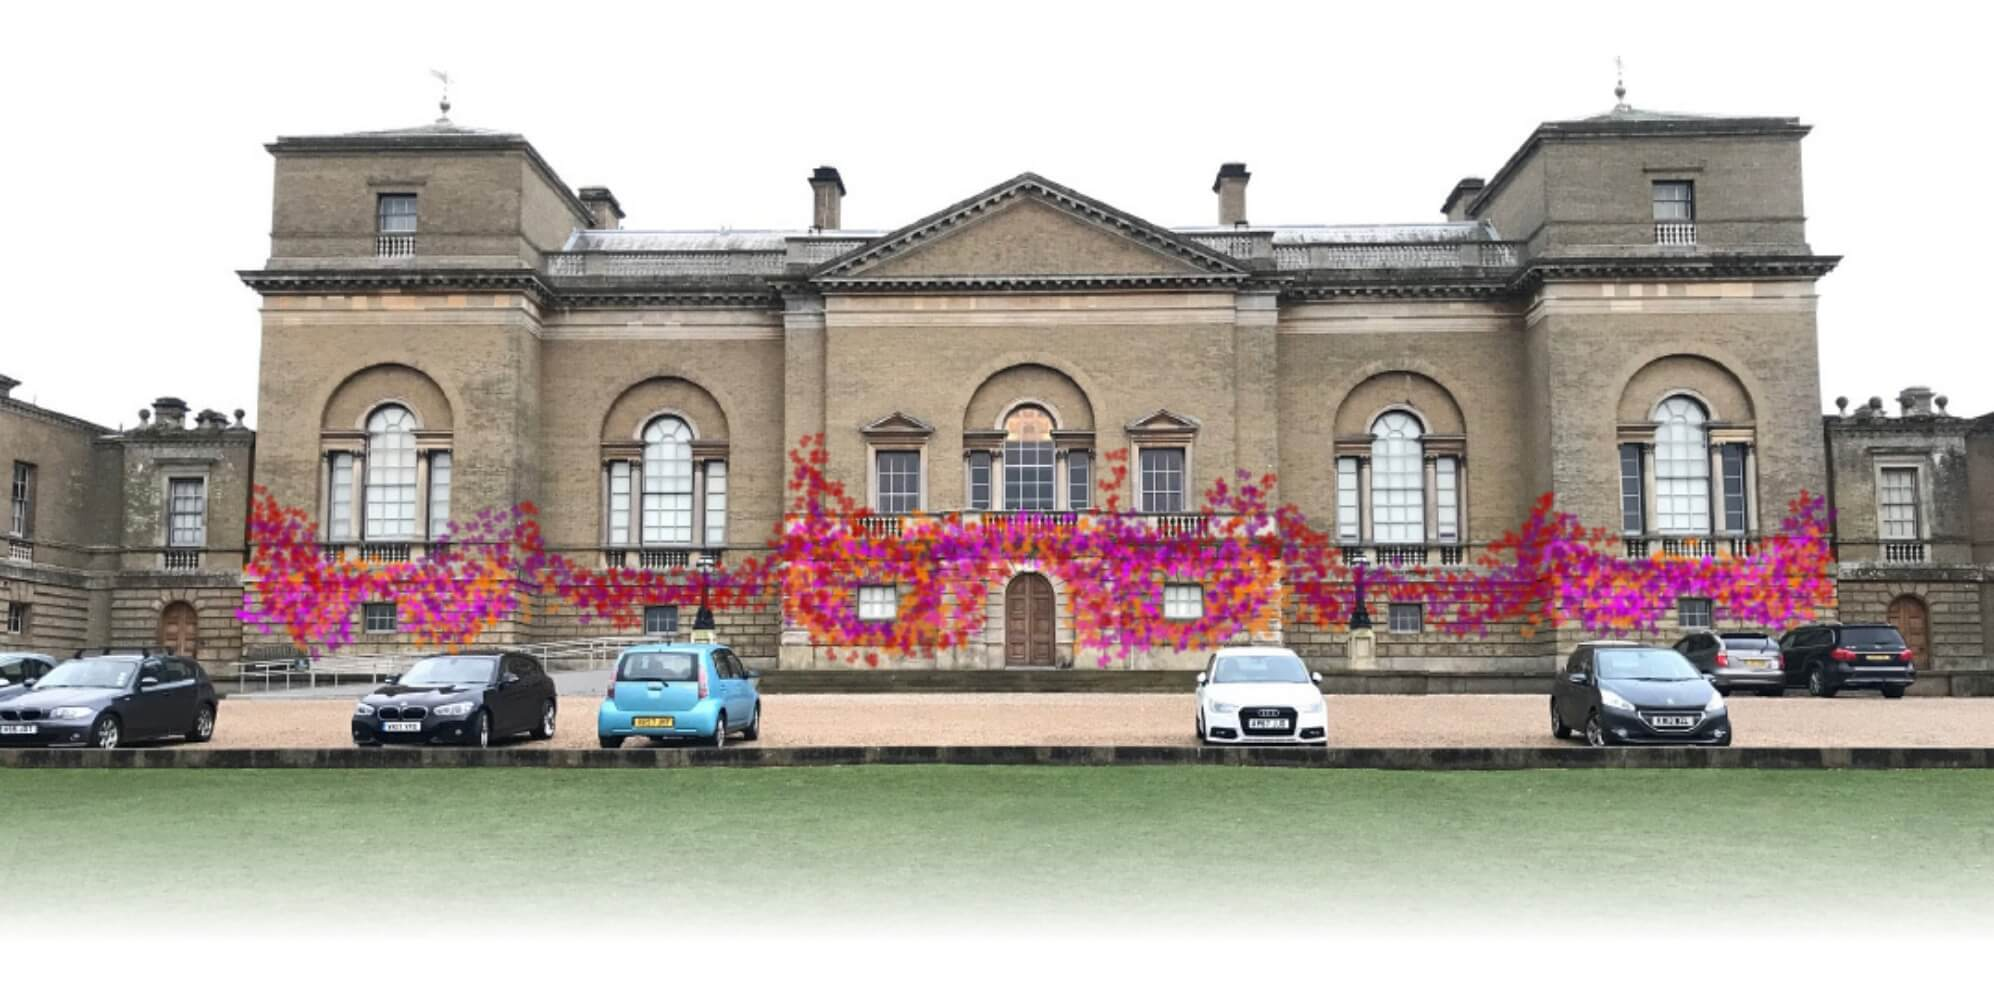 Visualisation of the butterflies fluttering across Holkham Hall